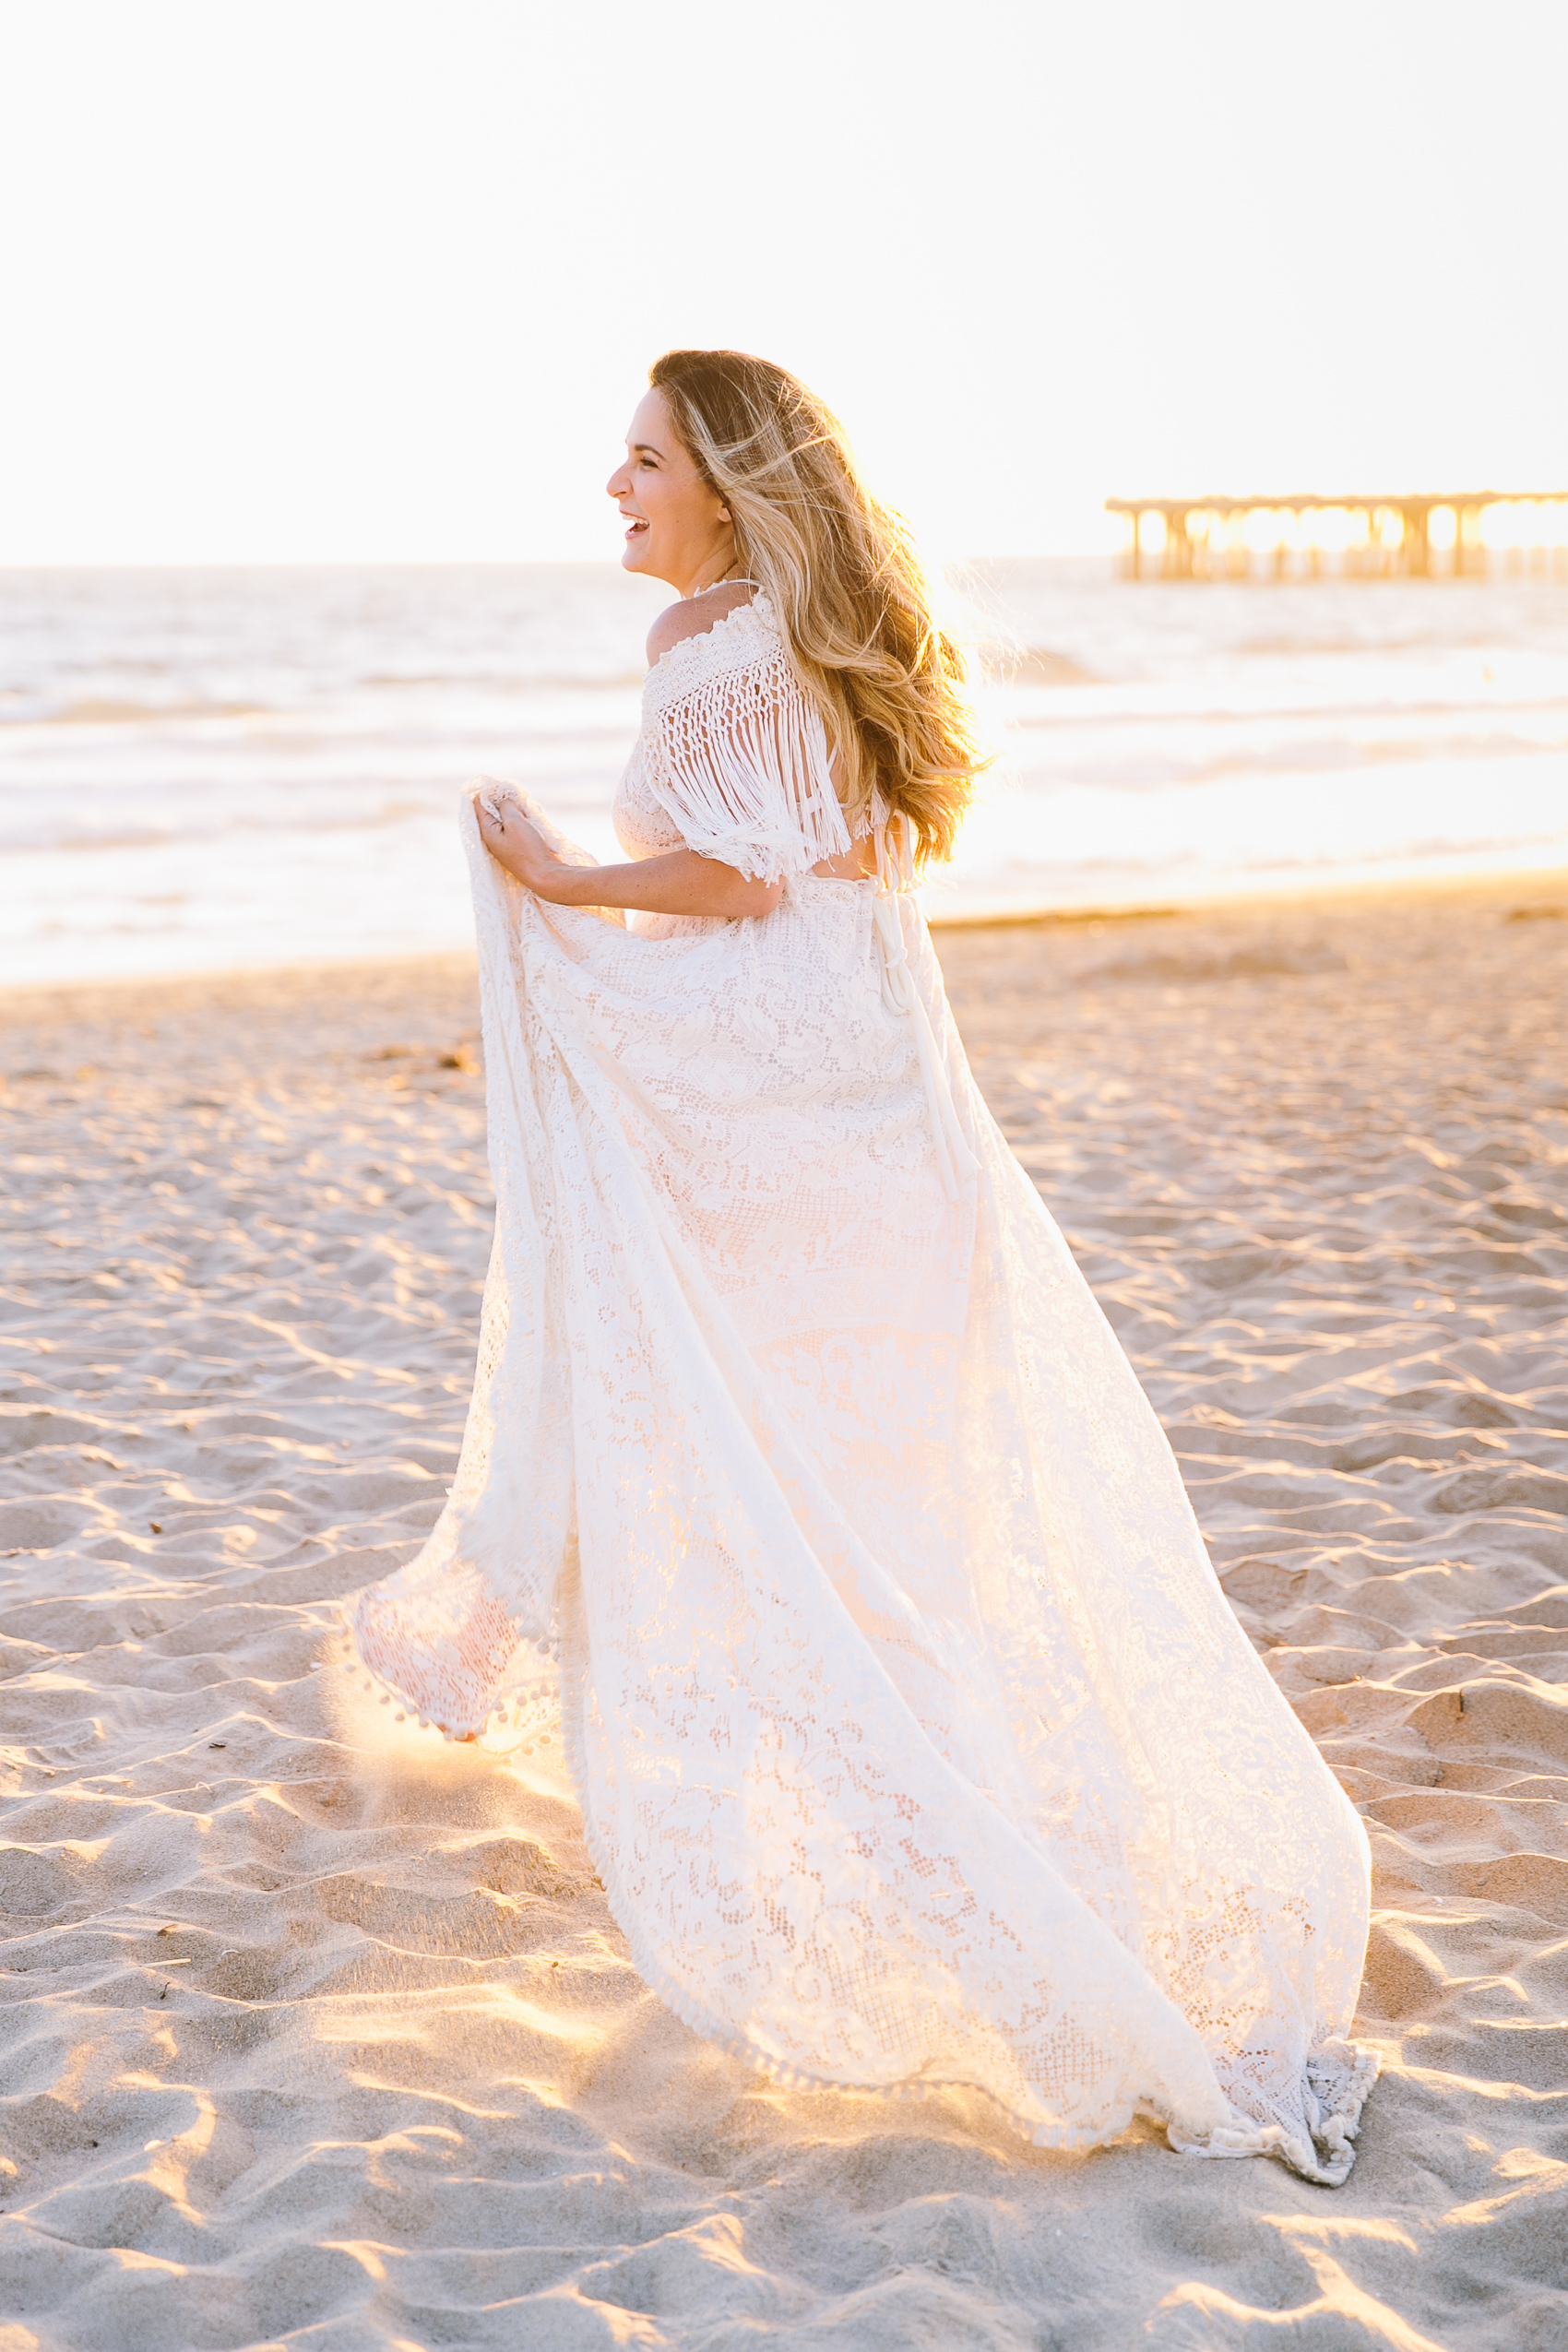 Los_Angeles_Family_Photographer_Maternity_Photos_Baby_Pregnancy_Venice_Beach_Golden_Hour-1001.jpg